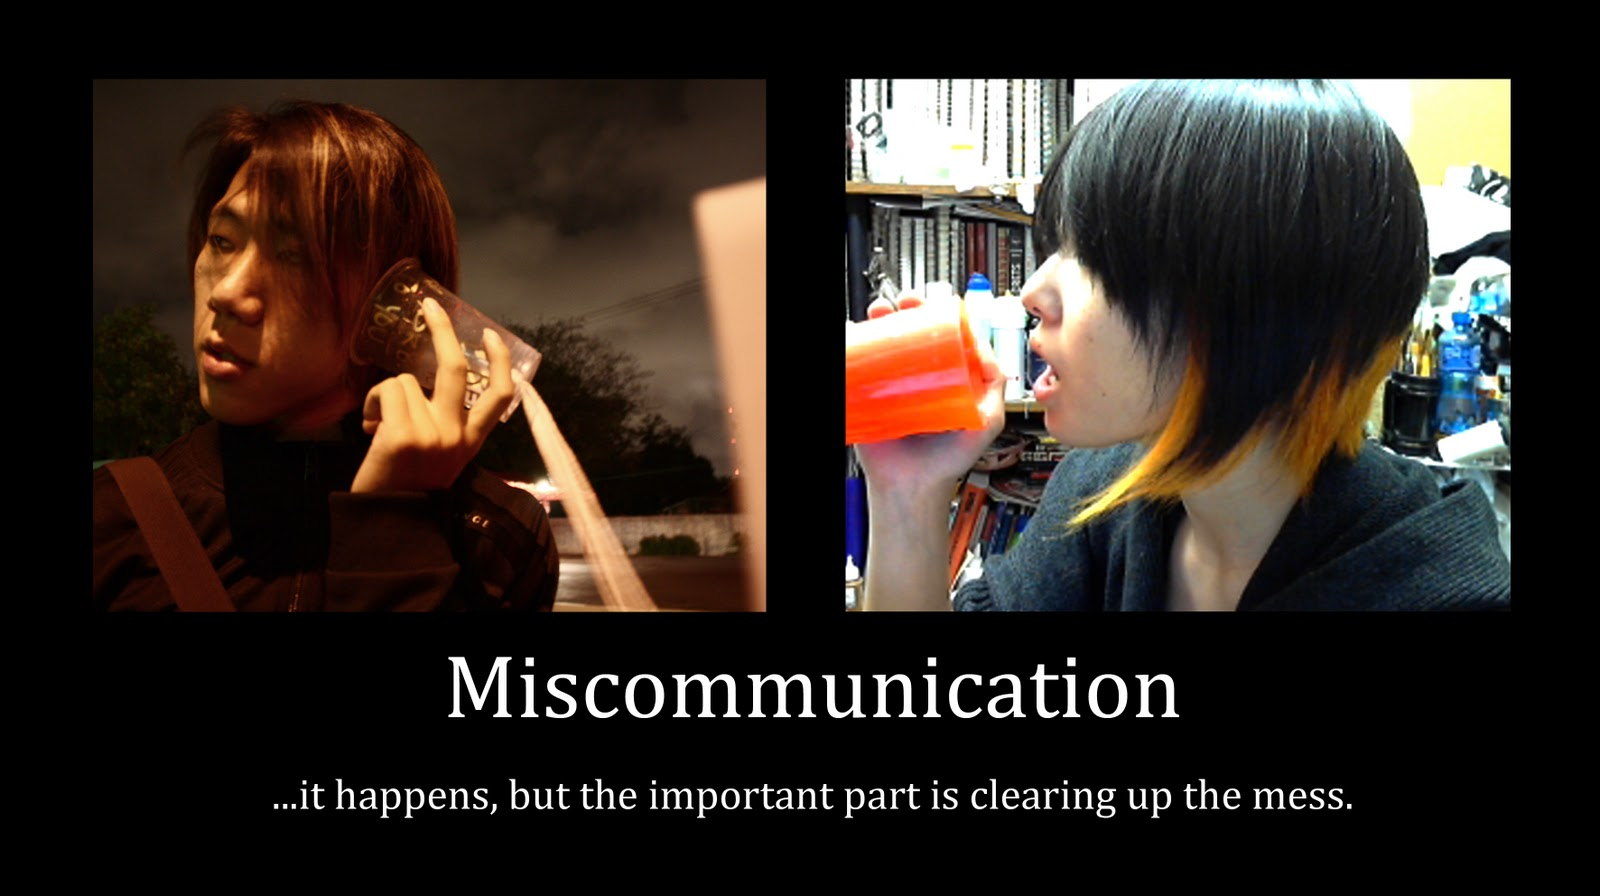 miscommunication in relationships The proper use of communication skills that can help you avoid conflict in relationships in the future.